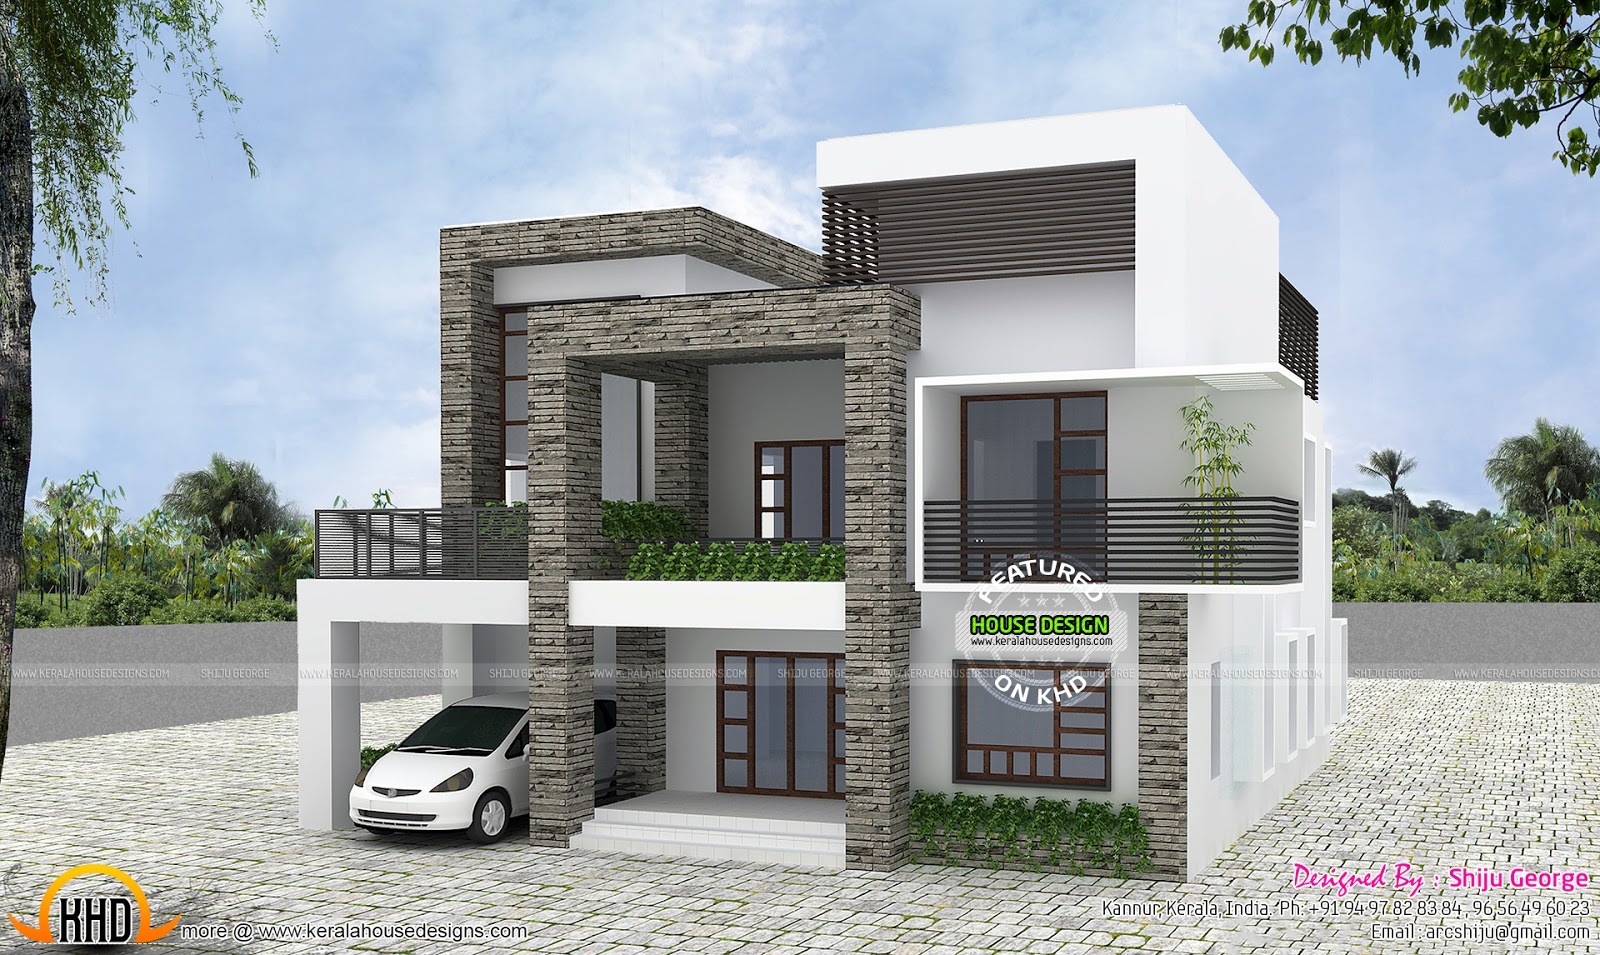 One house in 3 different styles with plan keralahousedesigns for Different style homes pictures